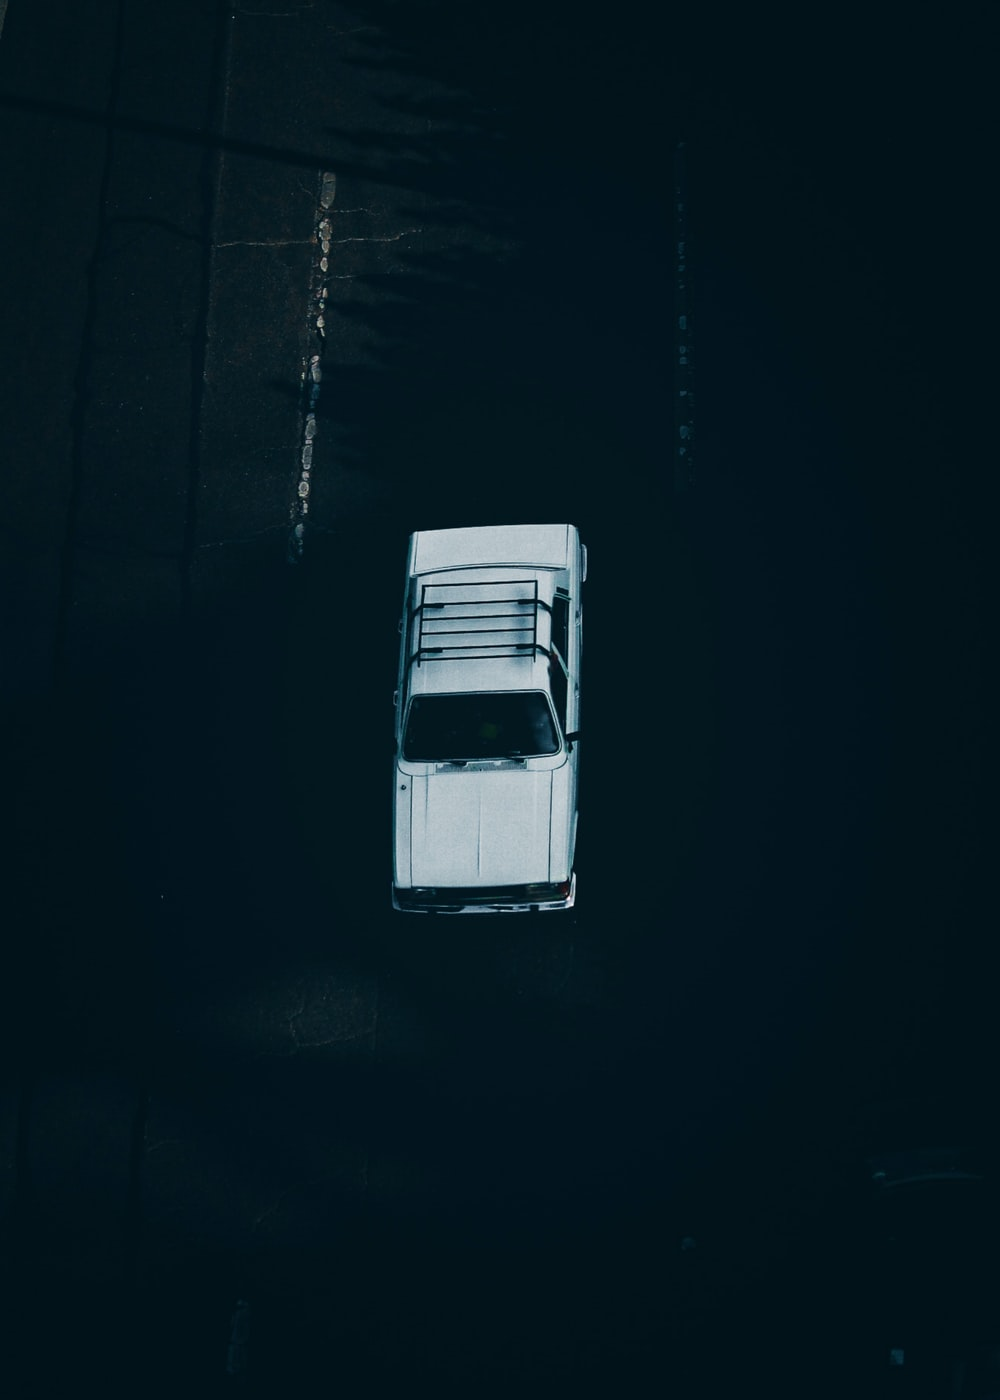 white car on road